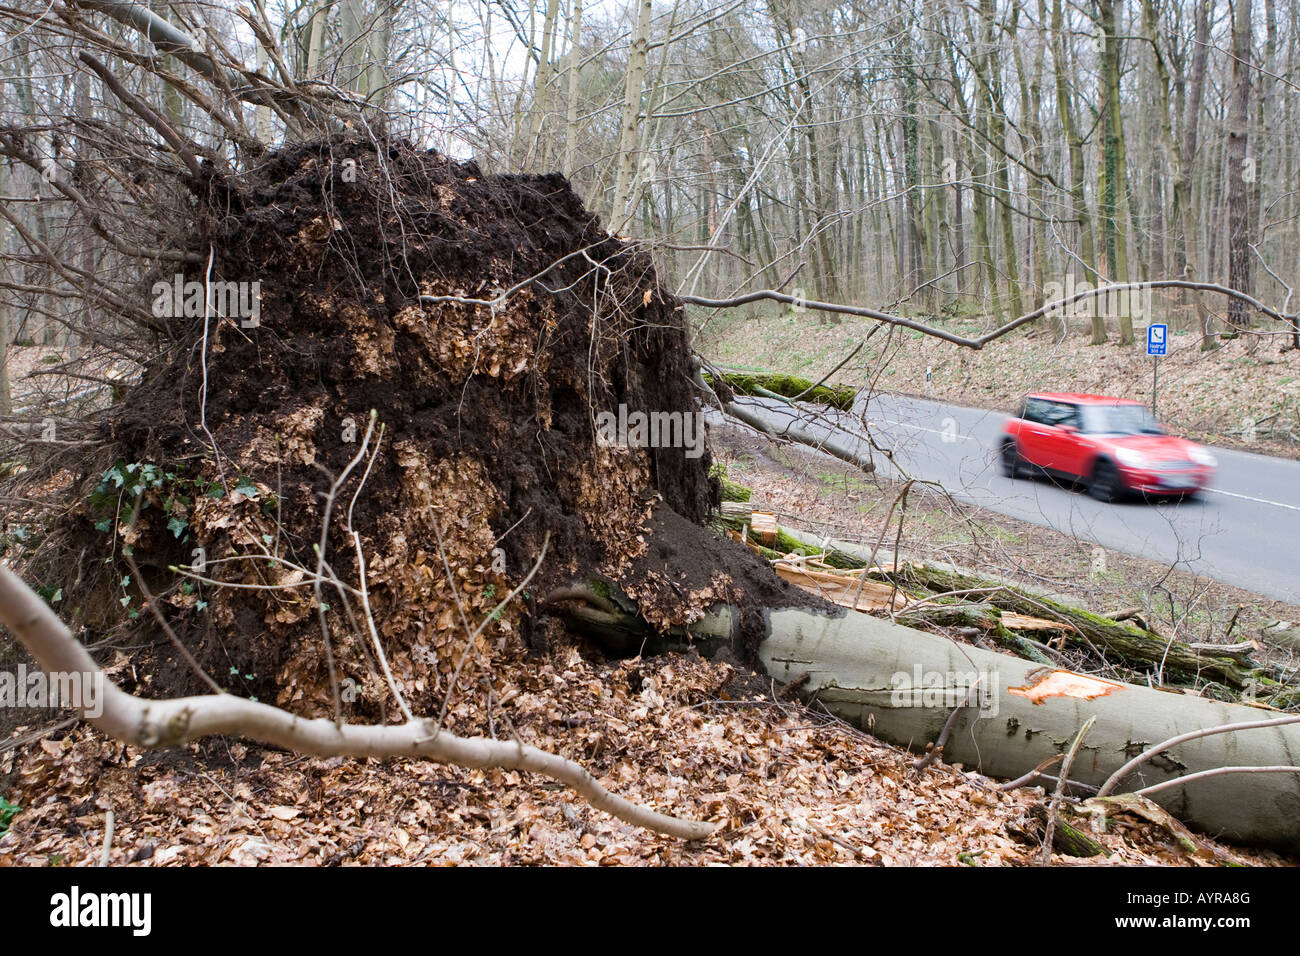 Fallen tree on the side of a road, damage after a storm in Hesse, Germany Stock Photo